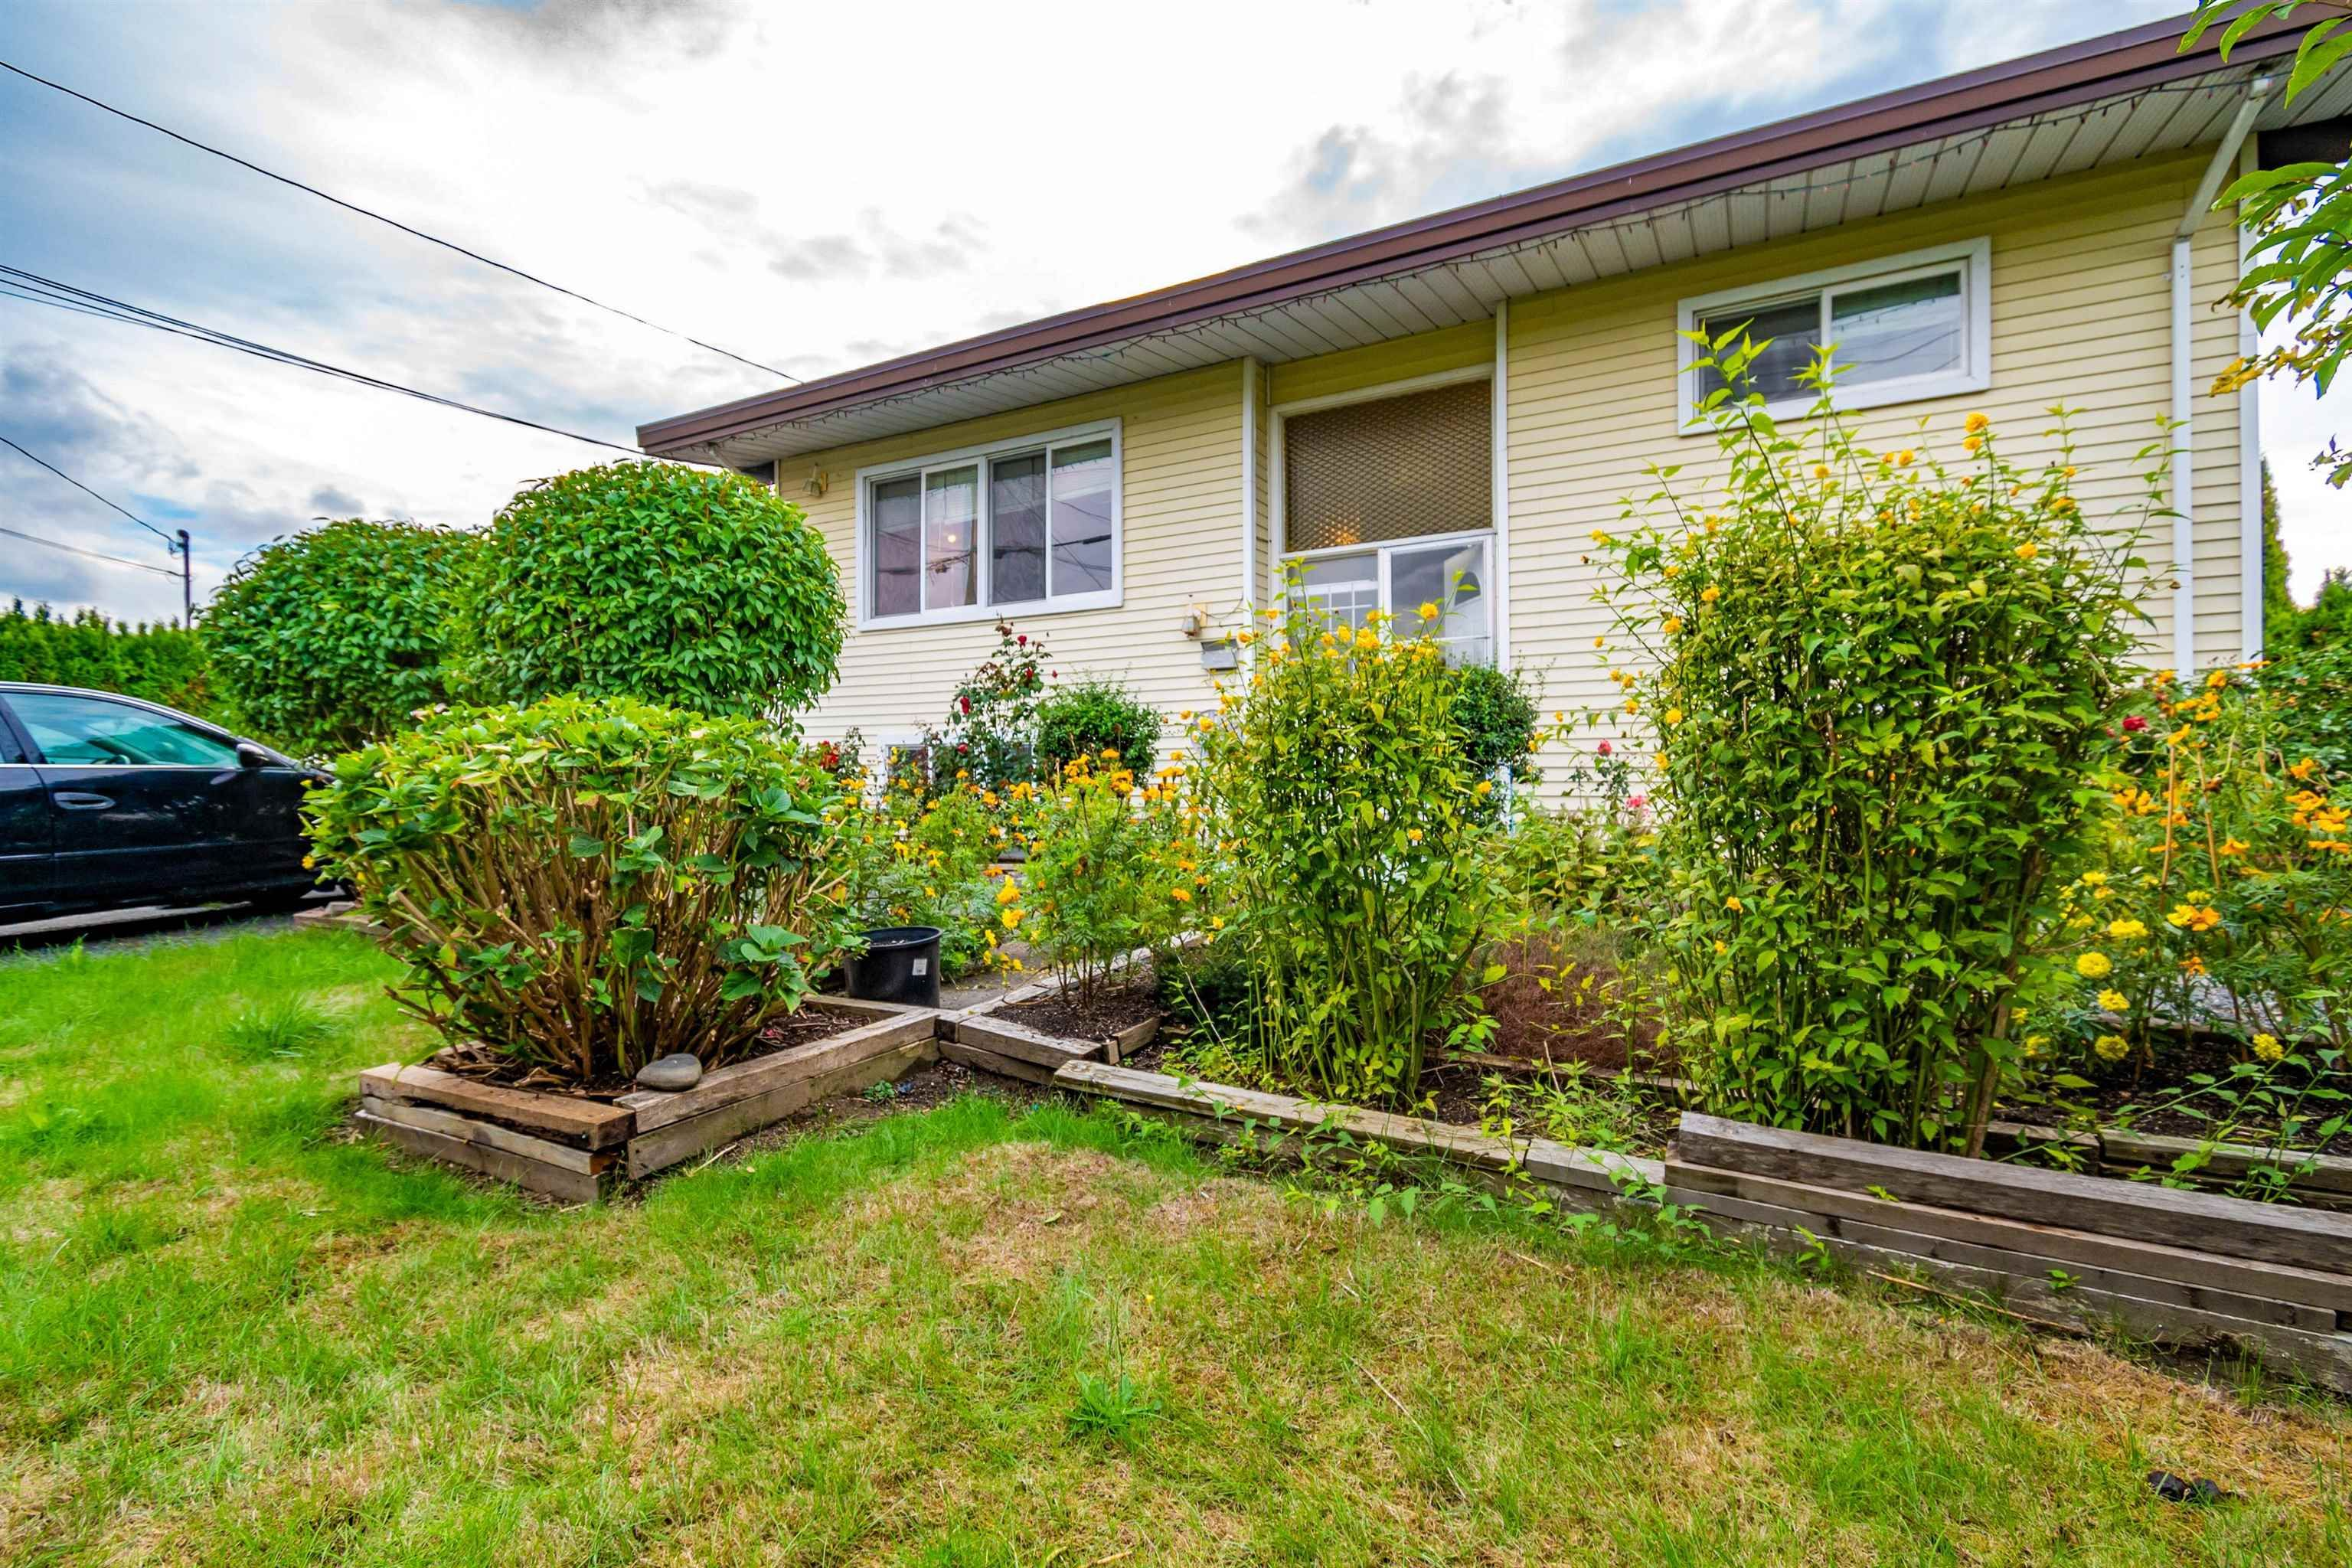 Main Photo: 8565 BROADWAY Street in Chilliwack: Chilliwack E Young-Yale House for sale : MLS®# R2619903